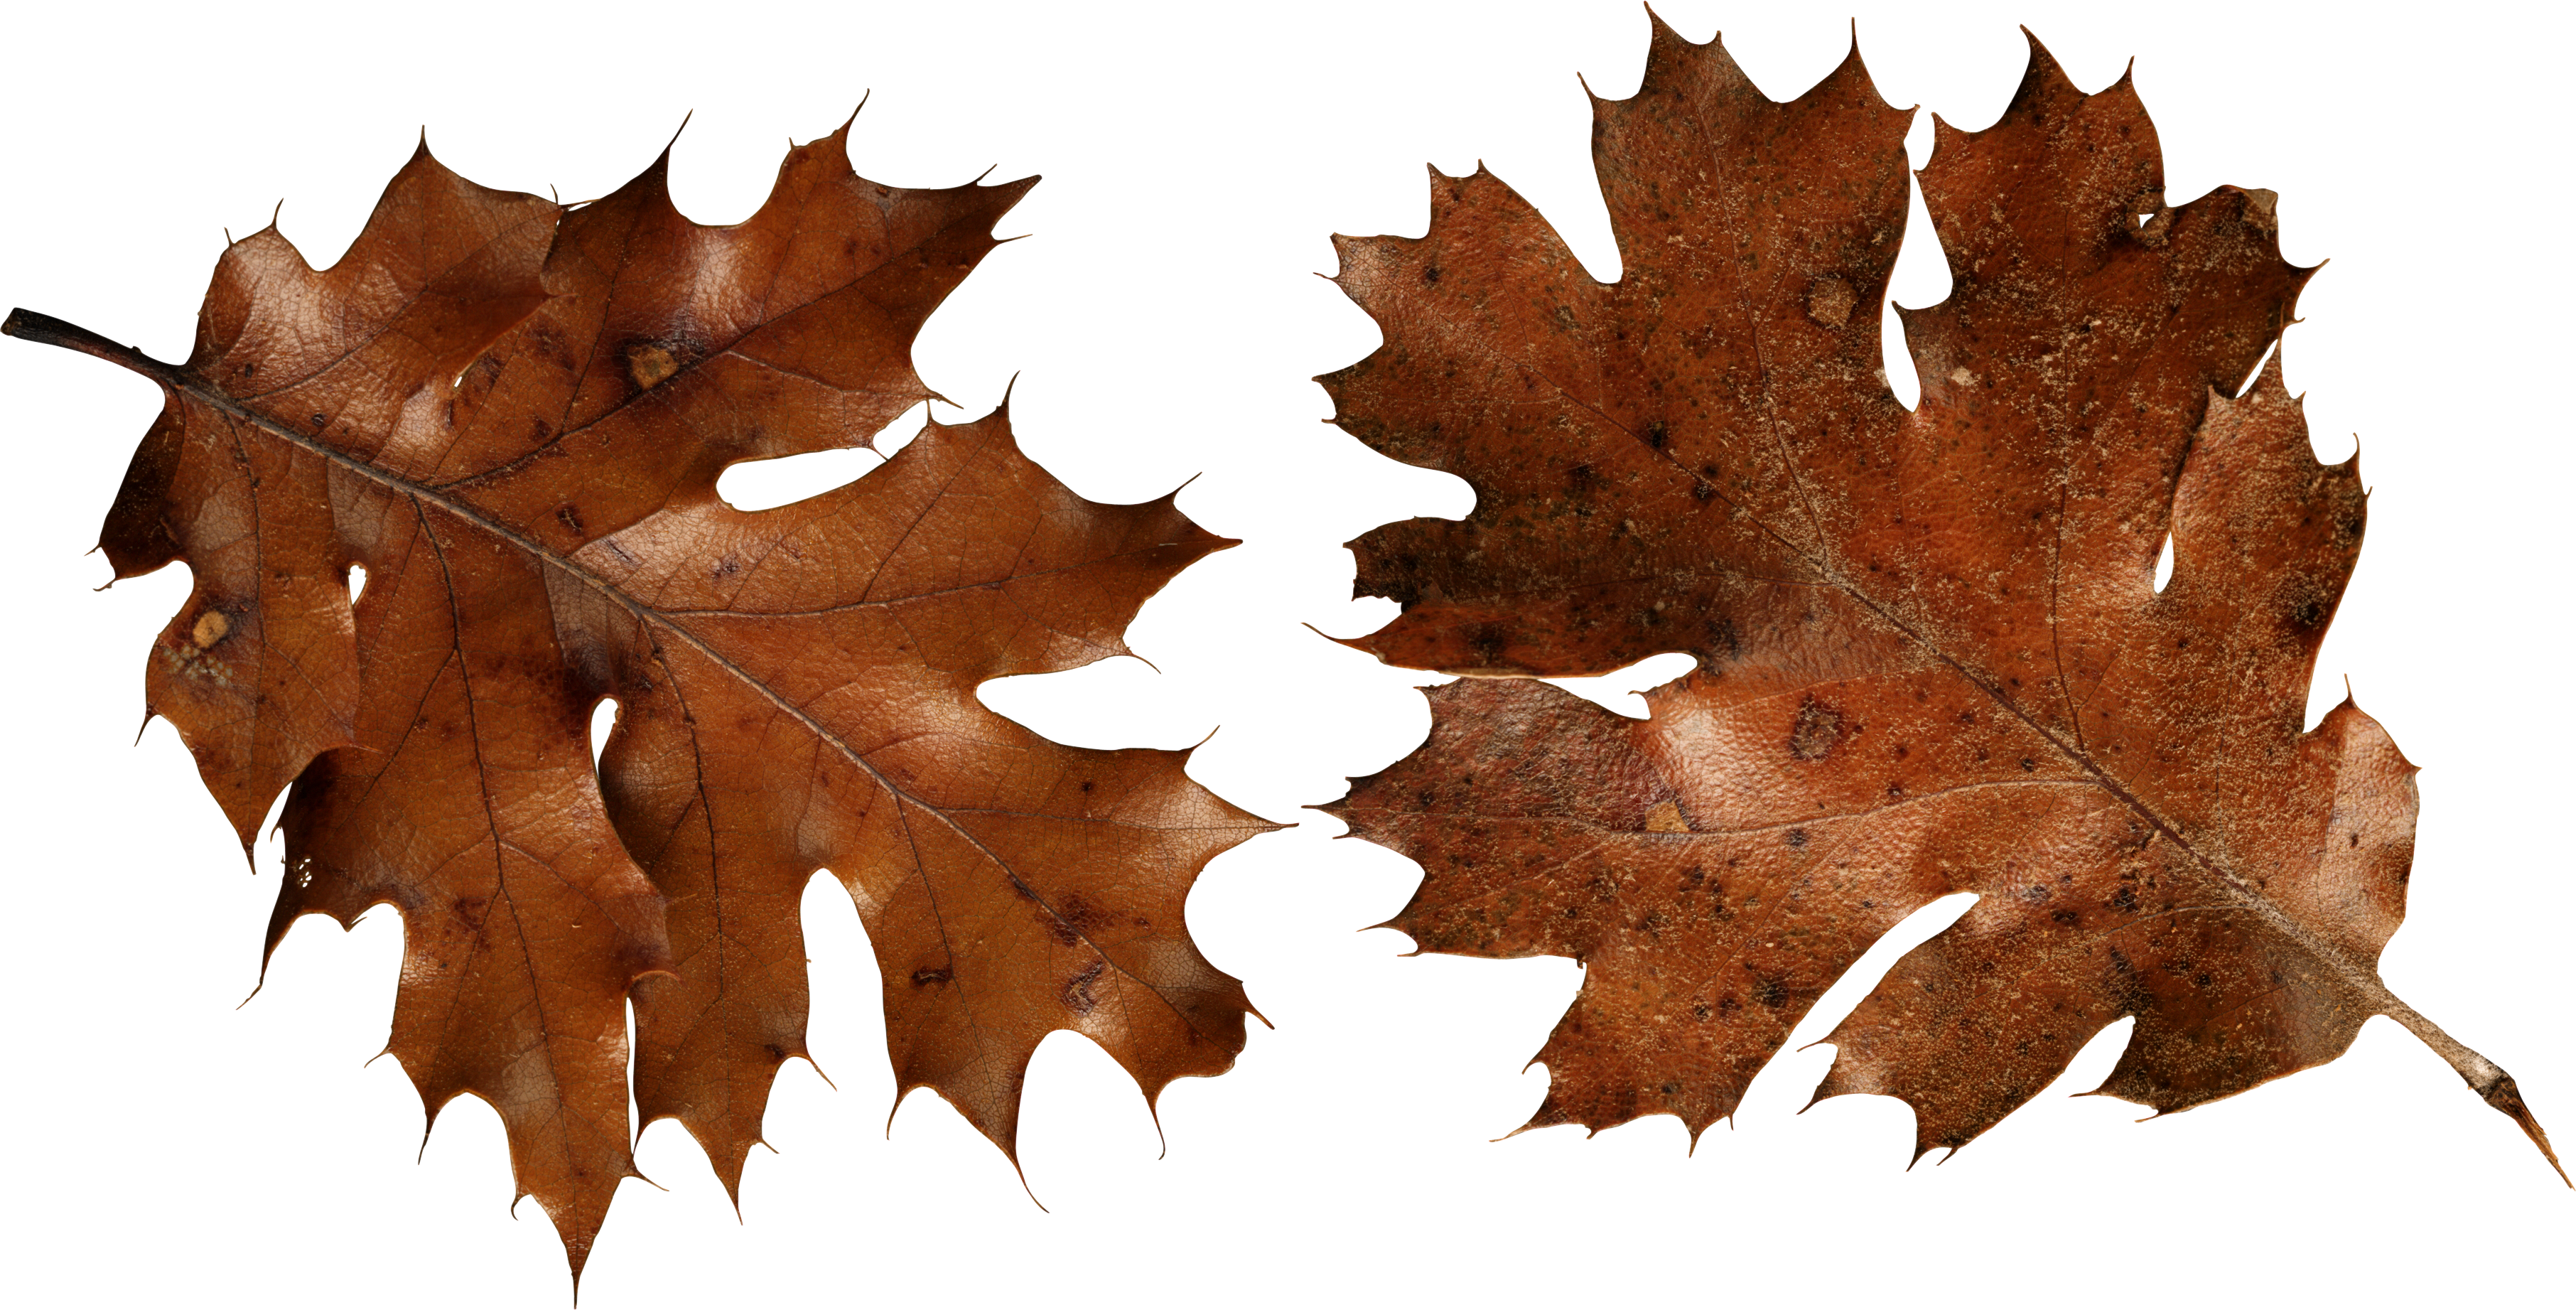 Brown Autumn Leaves Png Image Brown Aesthetic Png Autumn Leaves